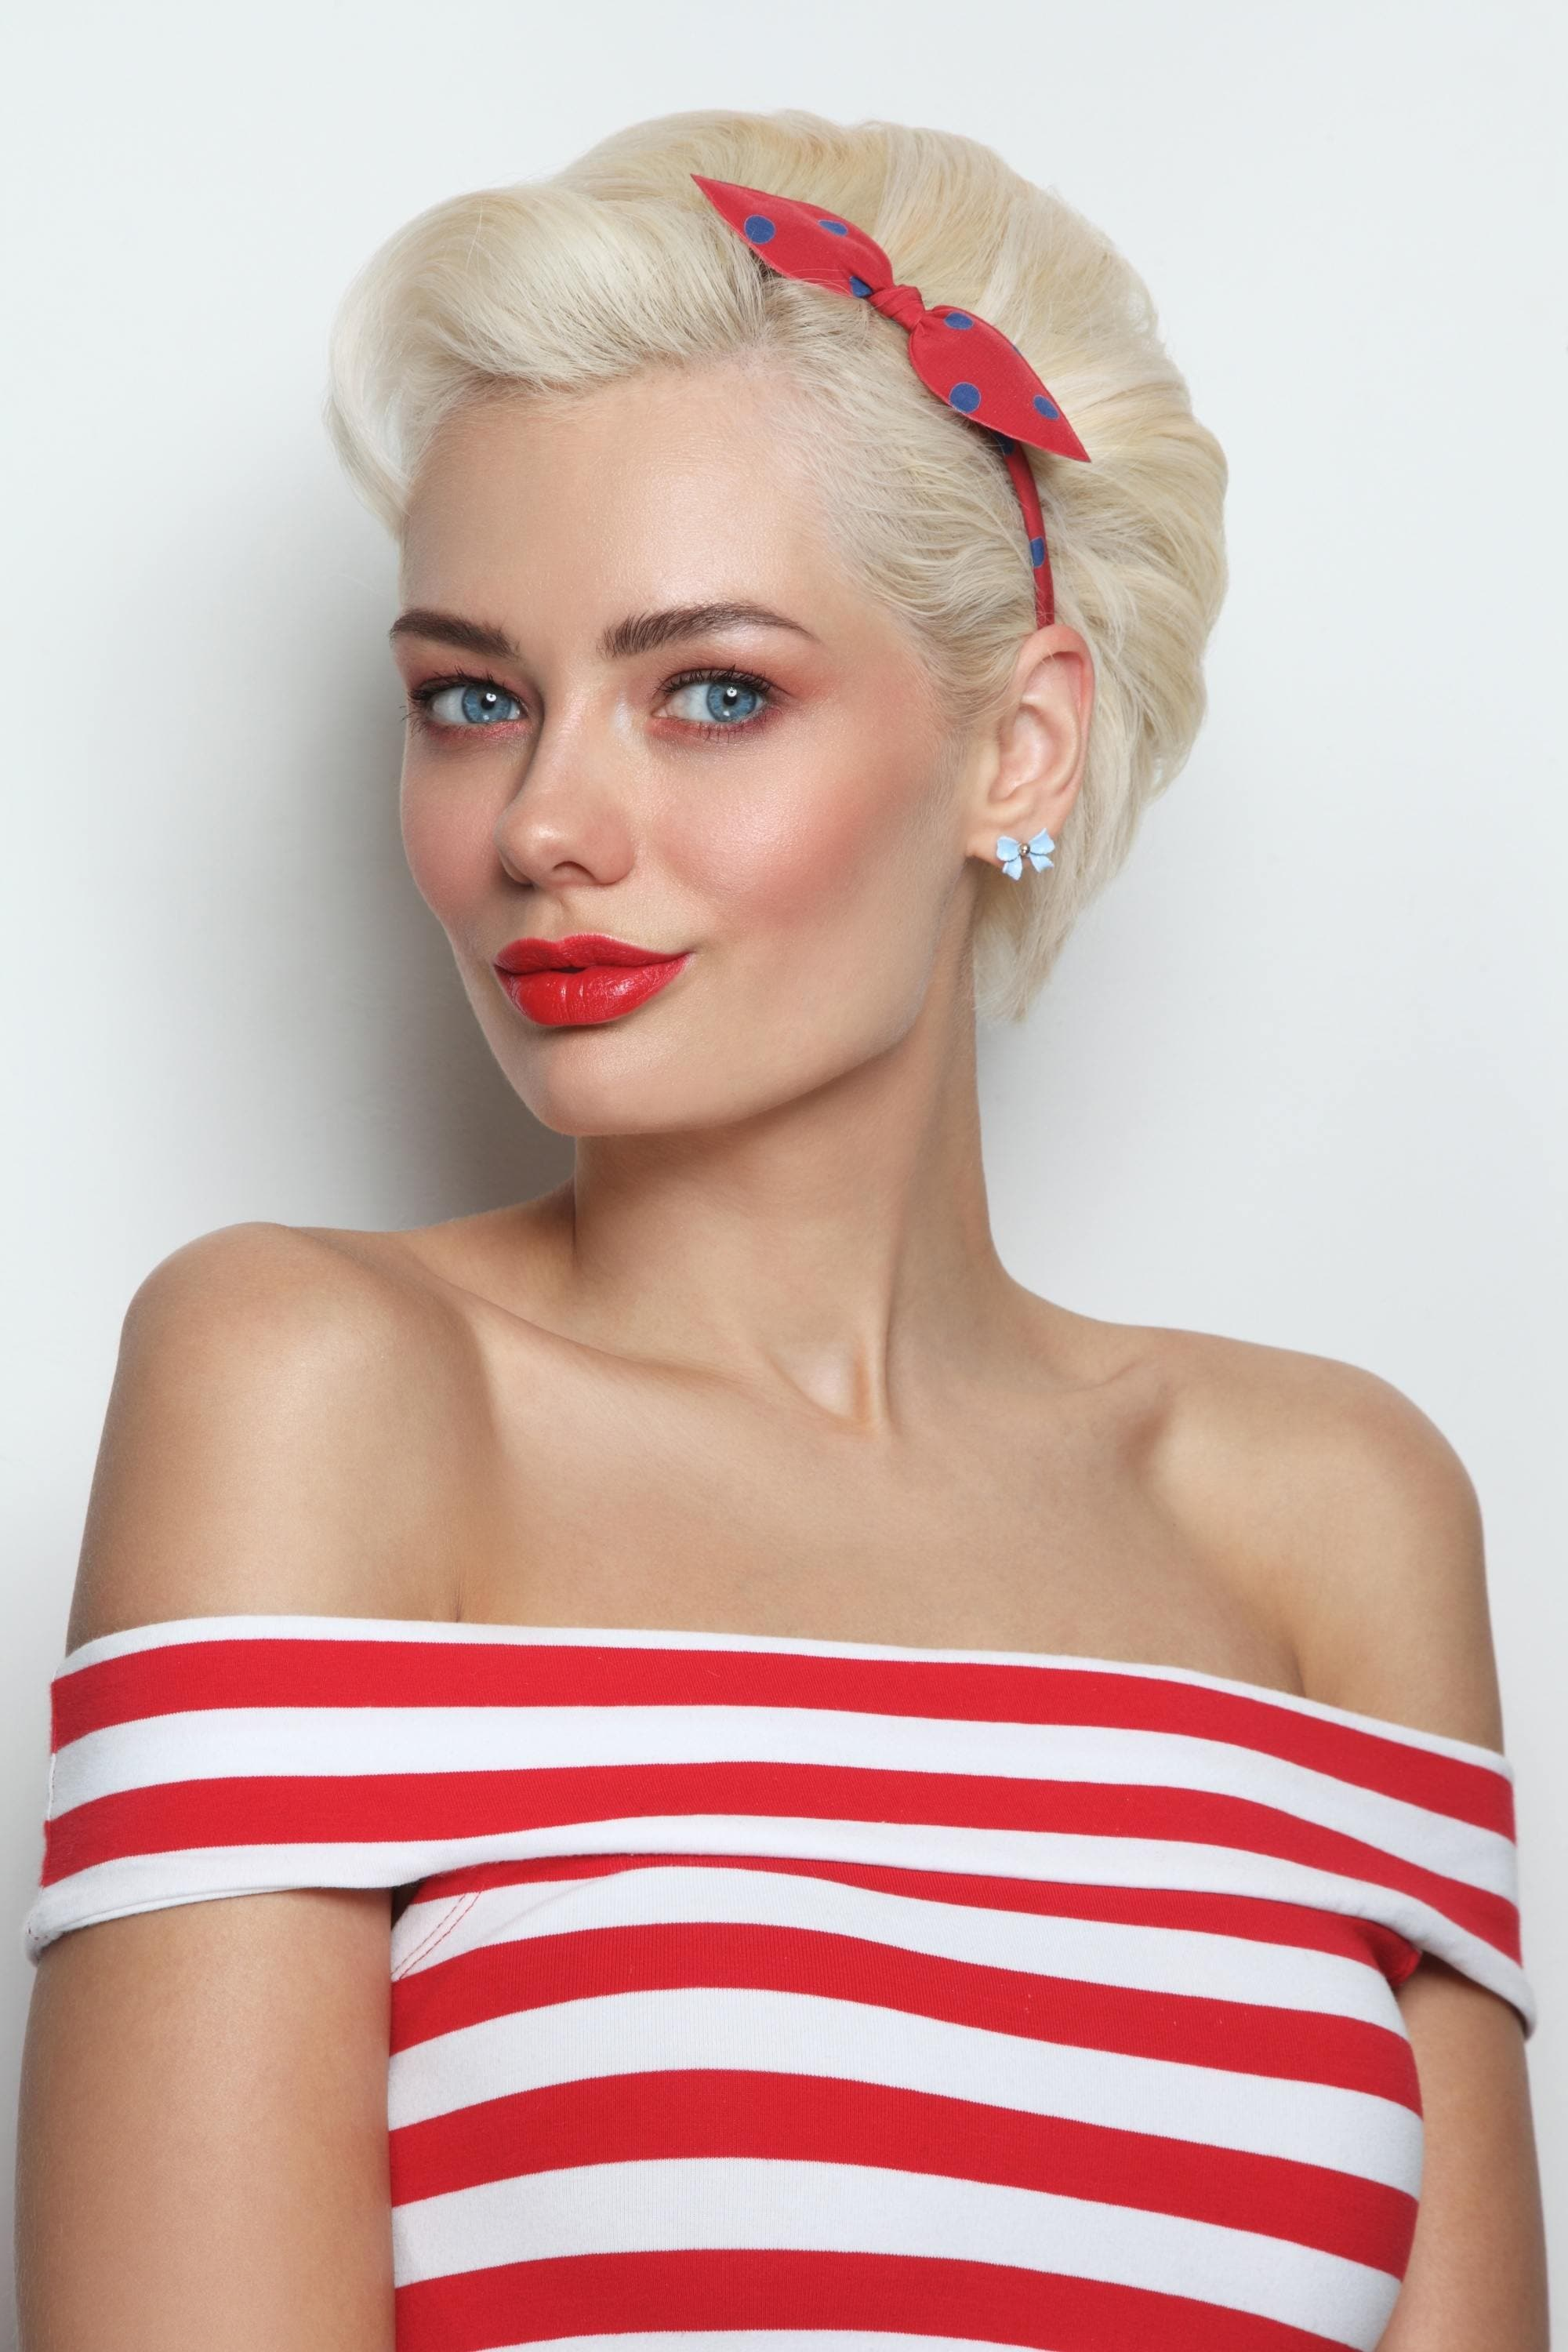 Woman with platinum blonde pixie cut with red headband wearing a striped red top